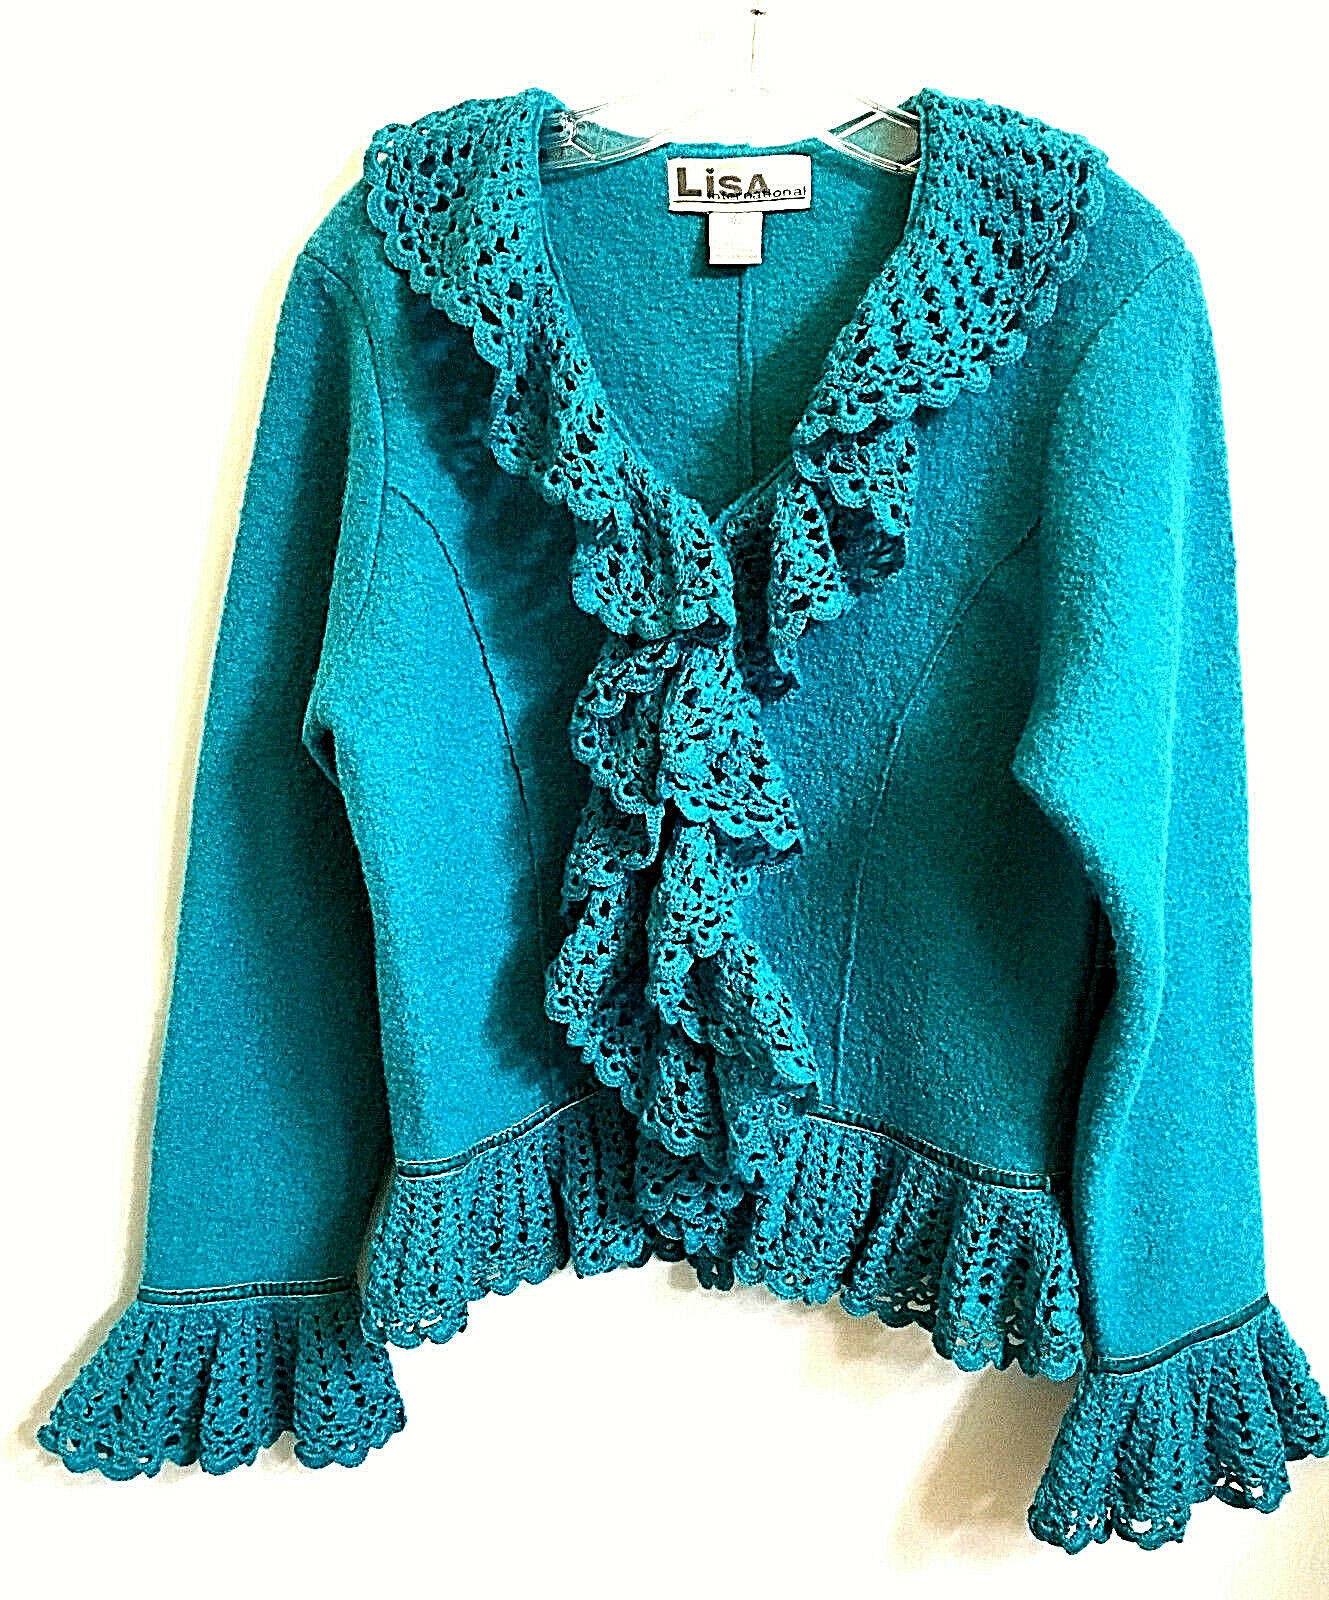 Lisa International Boiled Wool Cardigan  M Turquoise bluee Crochet Ruffle